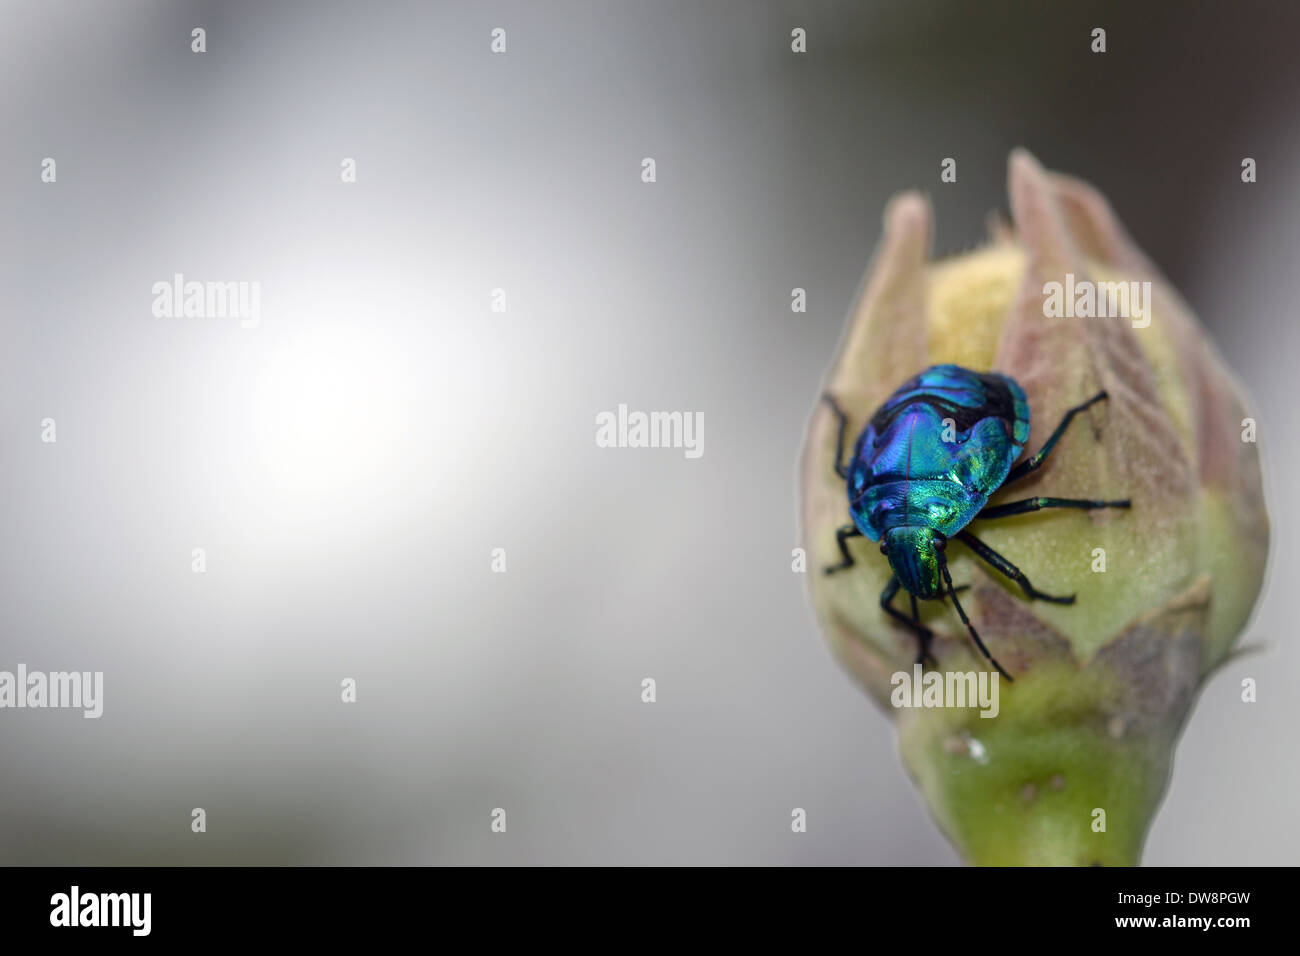 Blue insect Hemiptera, Zicrona cerulea, in a flower bud, Poindimie, New Caledonia, South Pacific - Stock Image